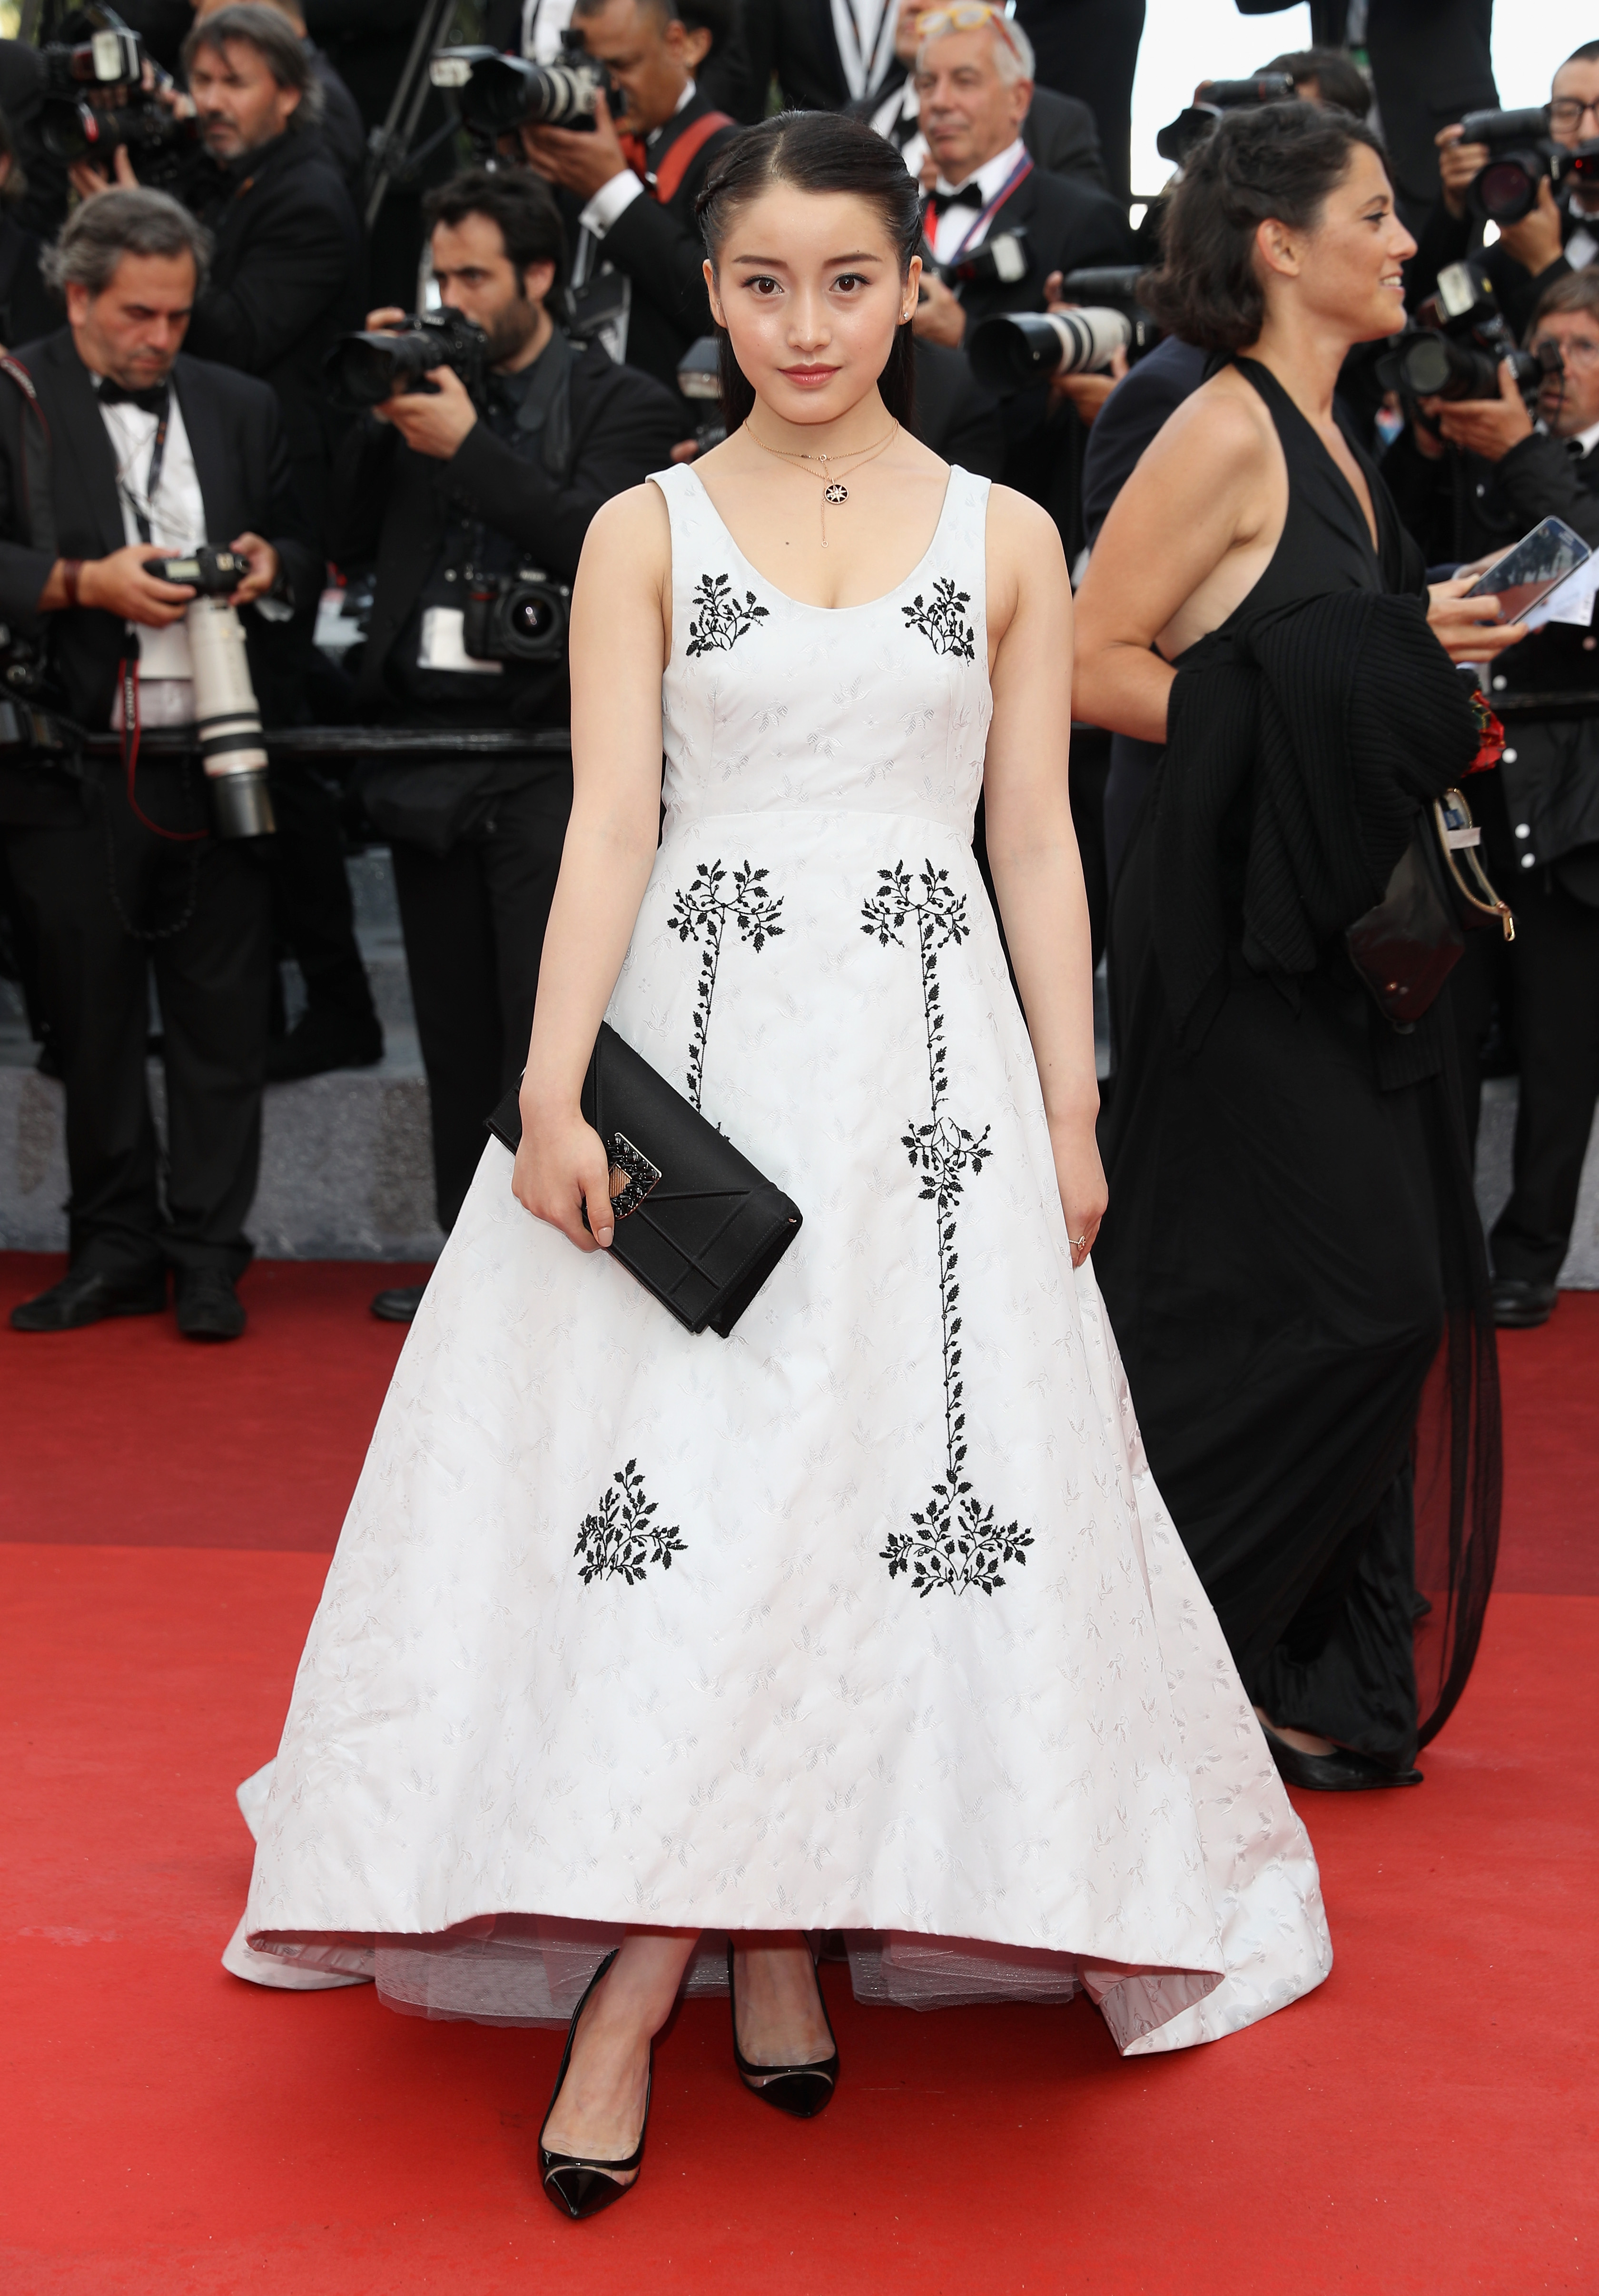 """CANNES, FRANCE - MAY 11: Yao Xin attends the """"Cafe Society"""" premiere and the Opening Night Gala during the 69th annual Cannes Film Festival at the Palais des Festivals on May 11, 2016 in Cannes, France. (Photo by Andreas Rentz/Getty Images)"""